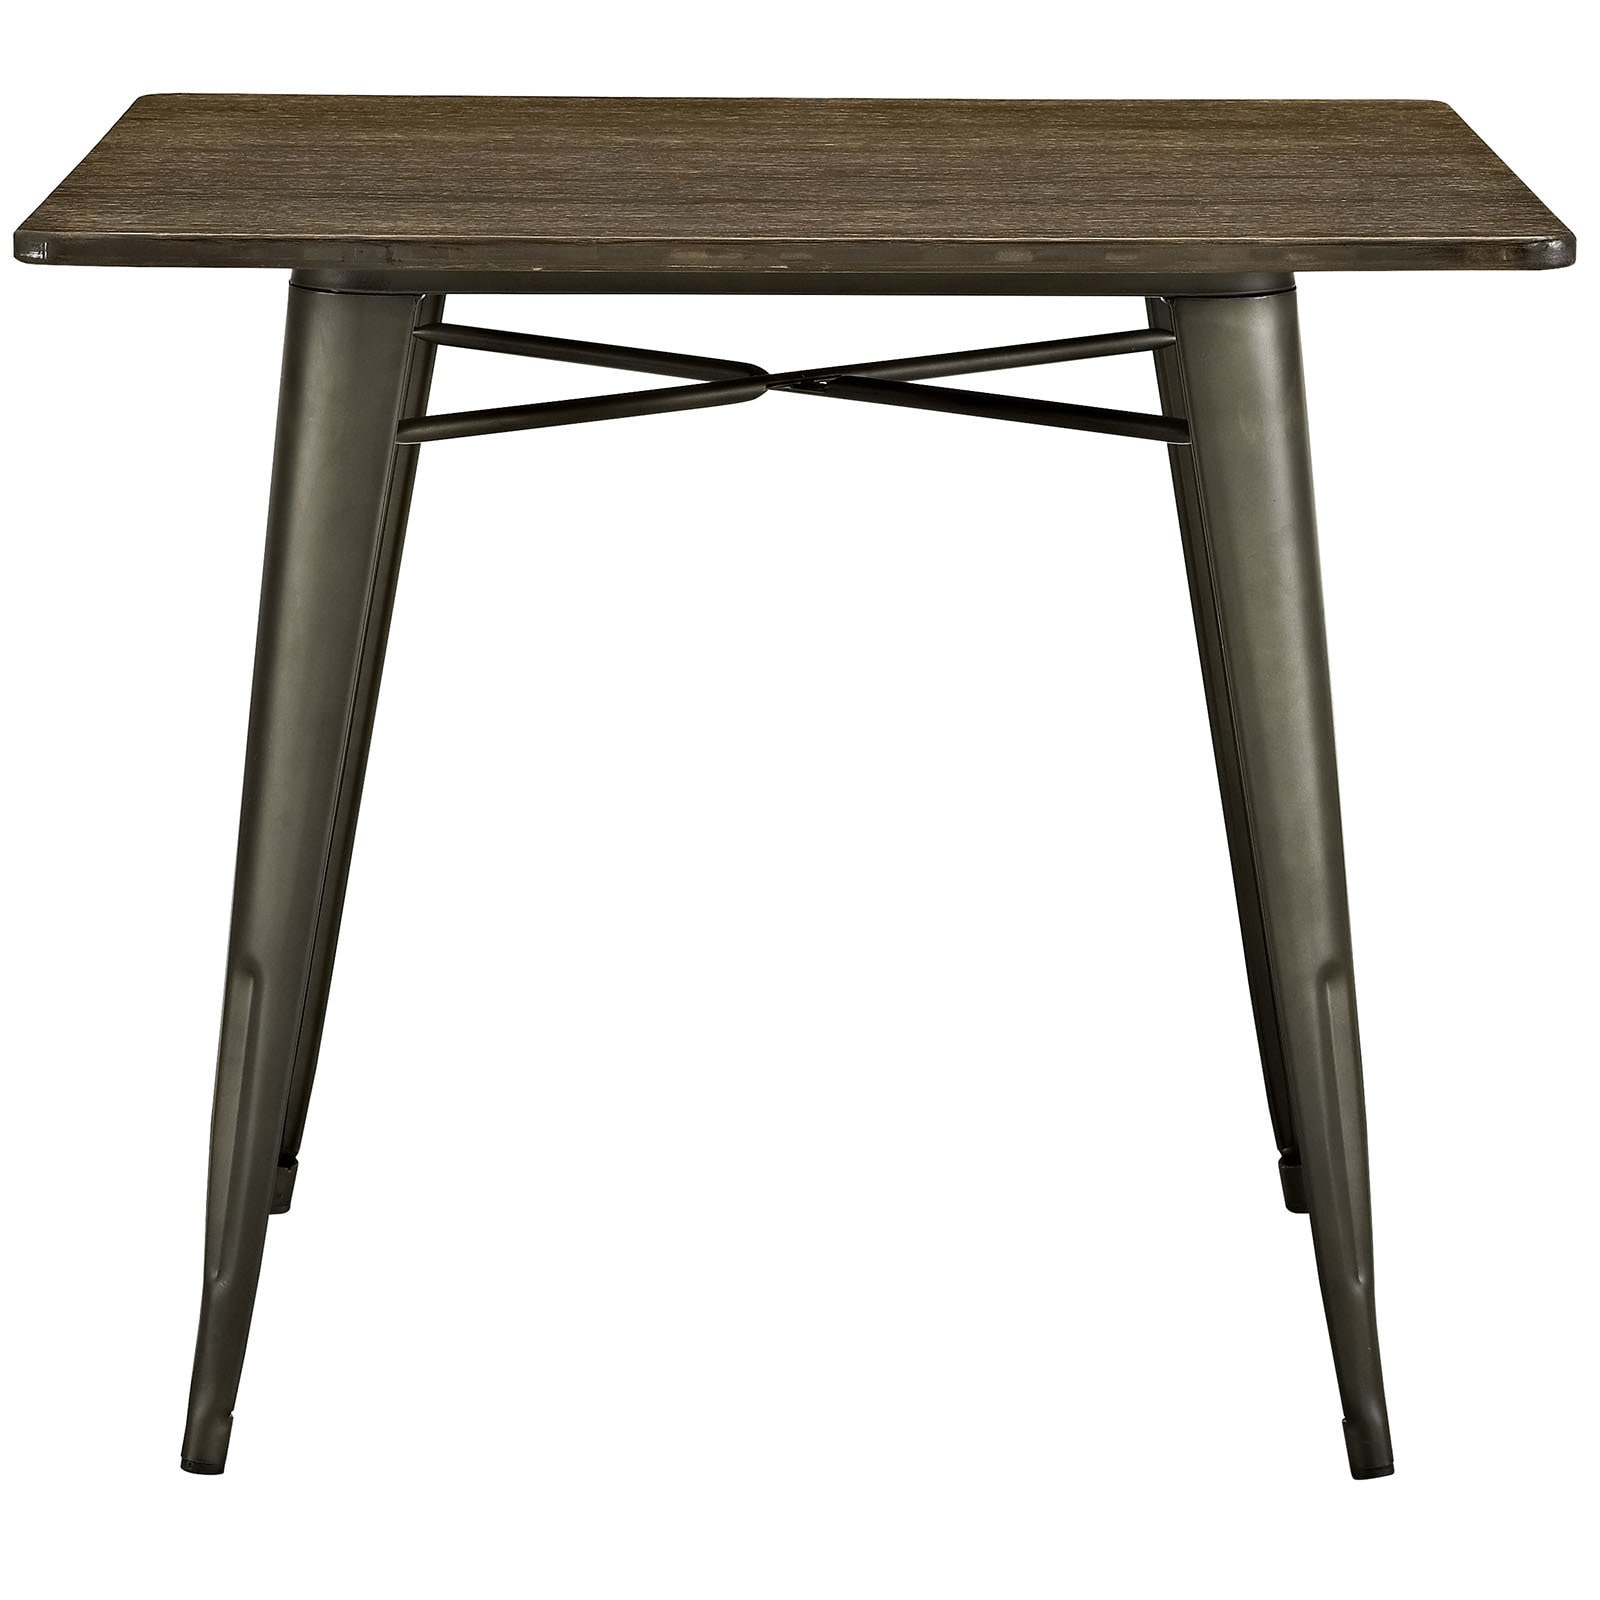 Alacrity 36 Inch Square Wood Dining Table   Brown